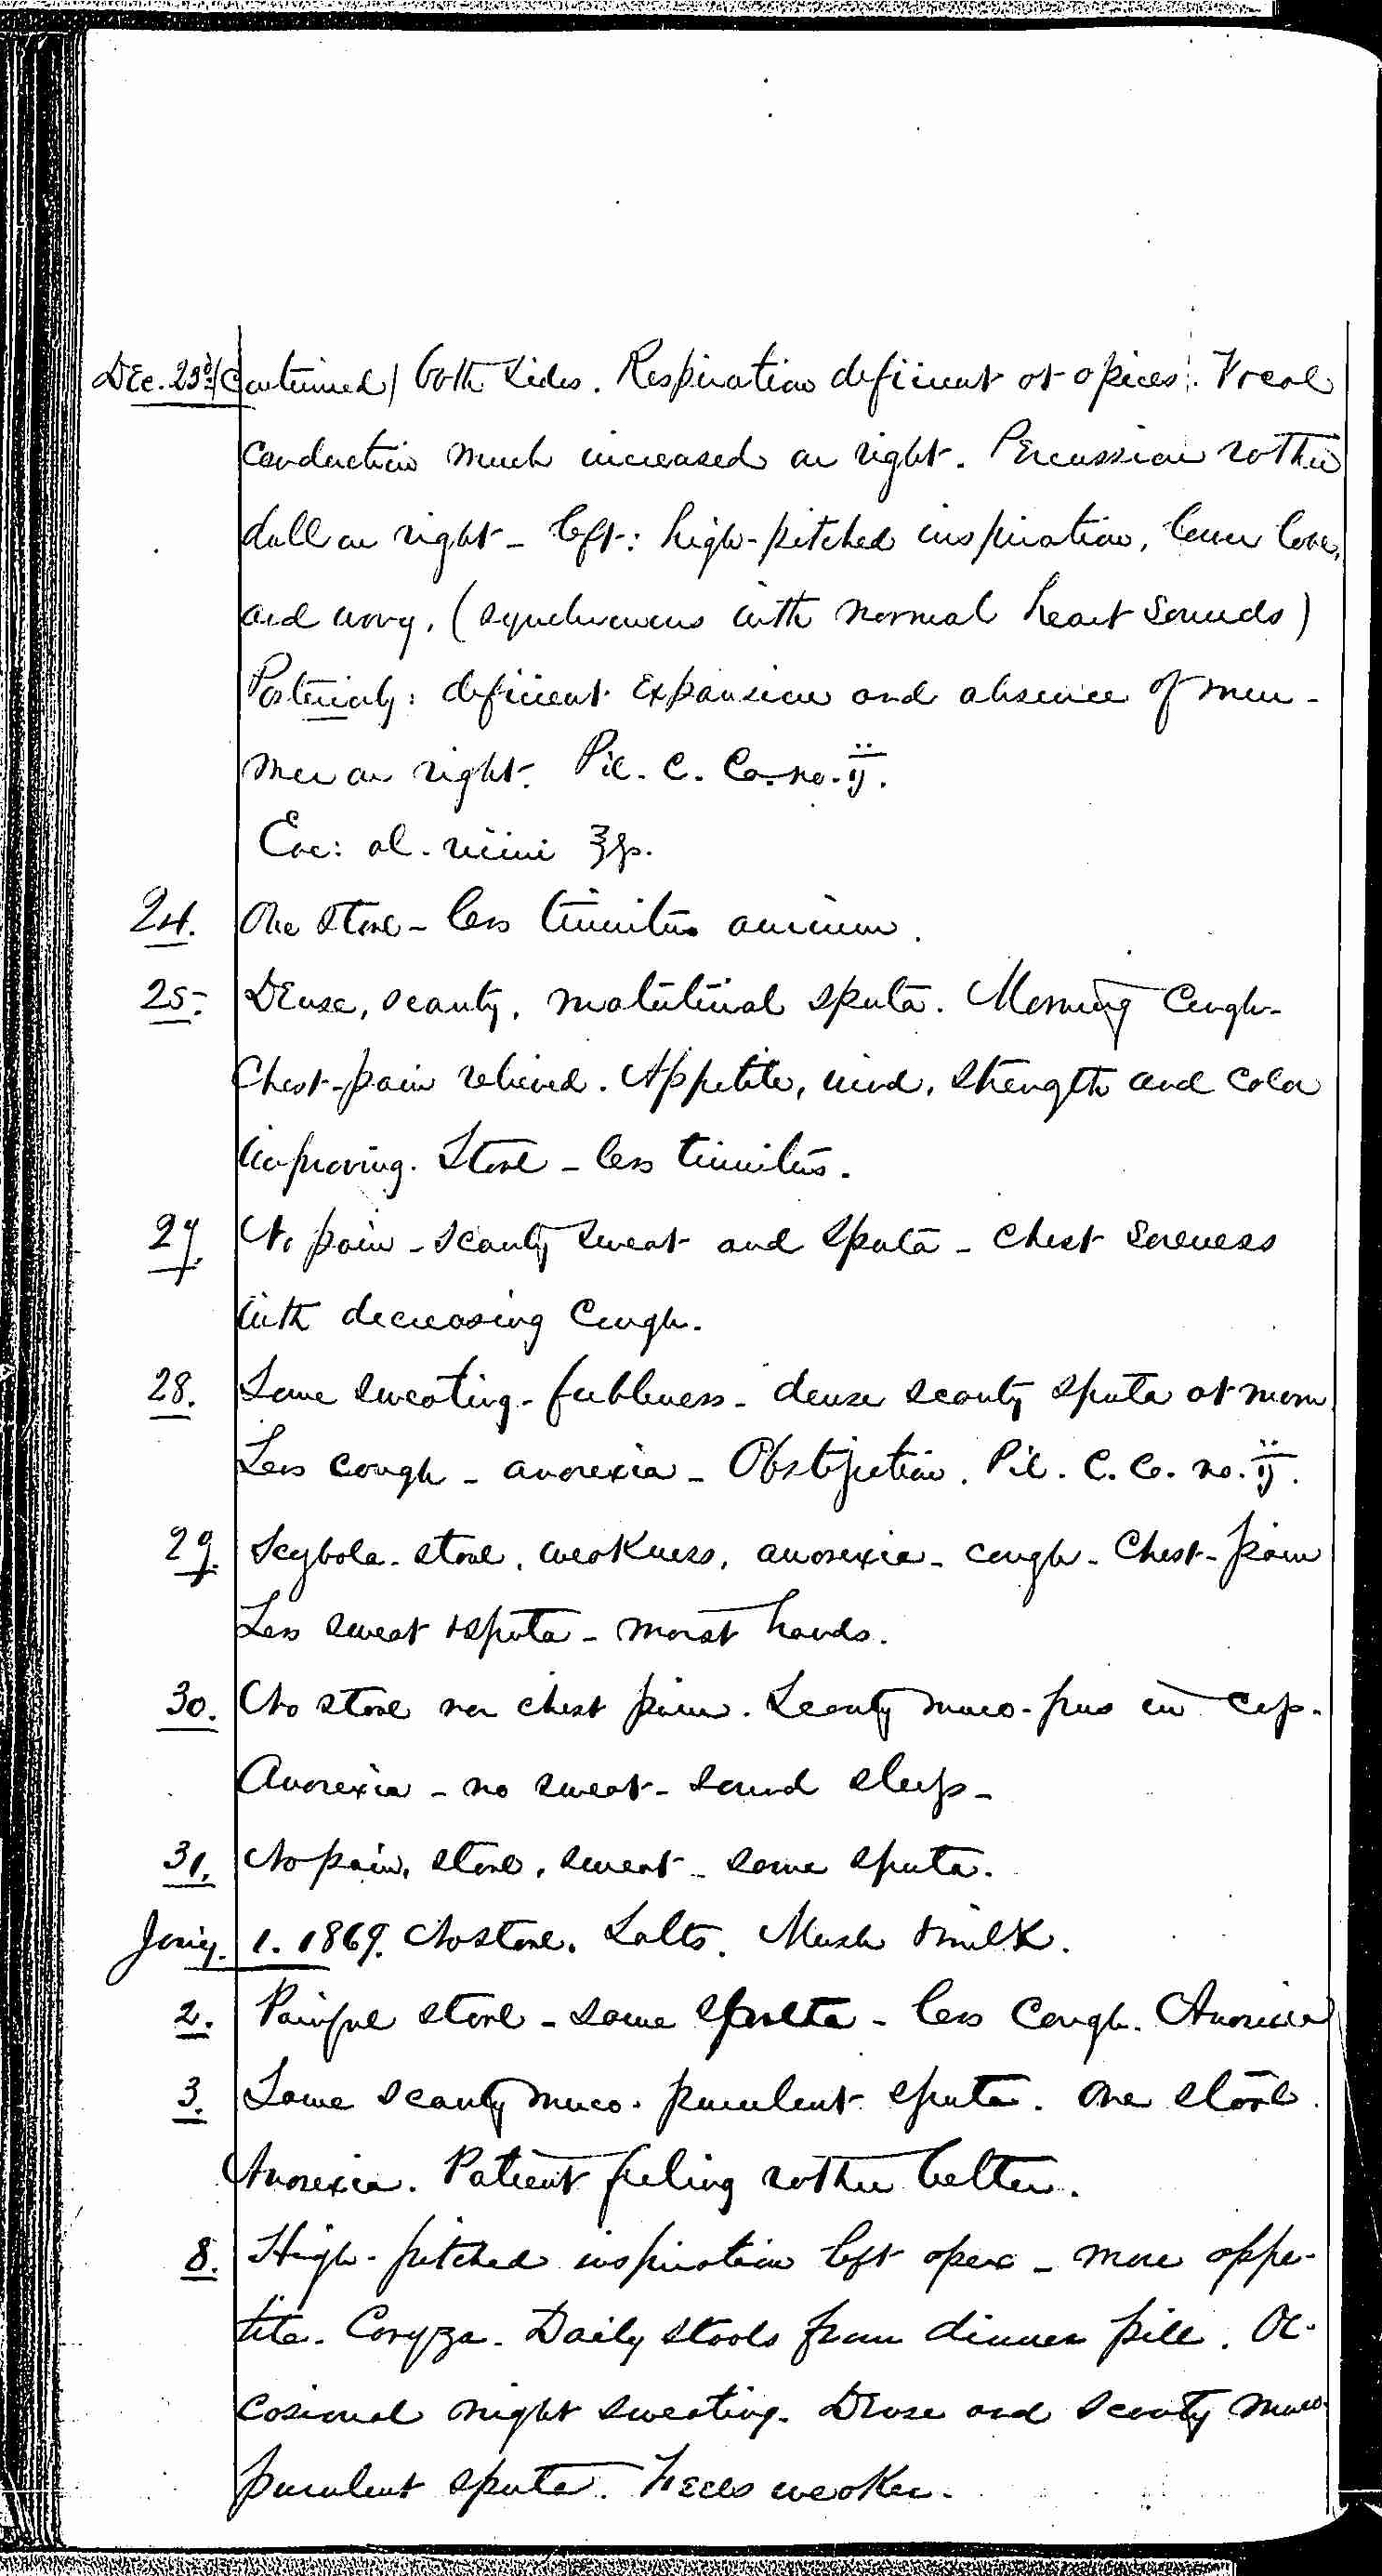 Entry for Peter C. Cheeks (page 4 of 16) in the log Hospital Tickets and Case Papers - Naval Hospital - Washington, D.C. - 1868-69